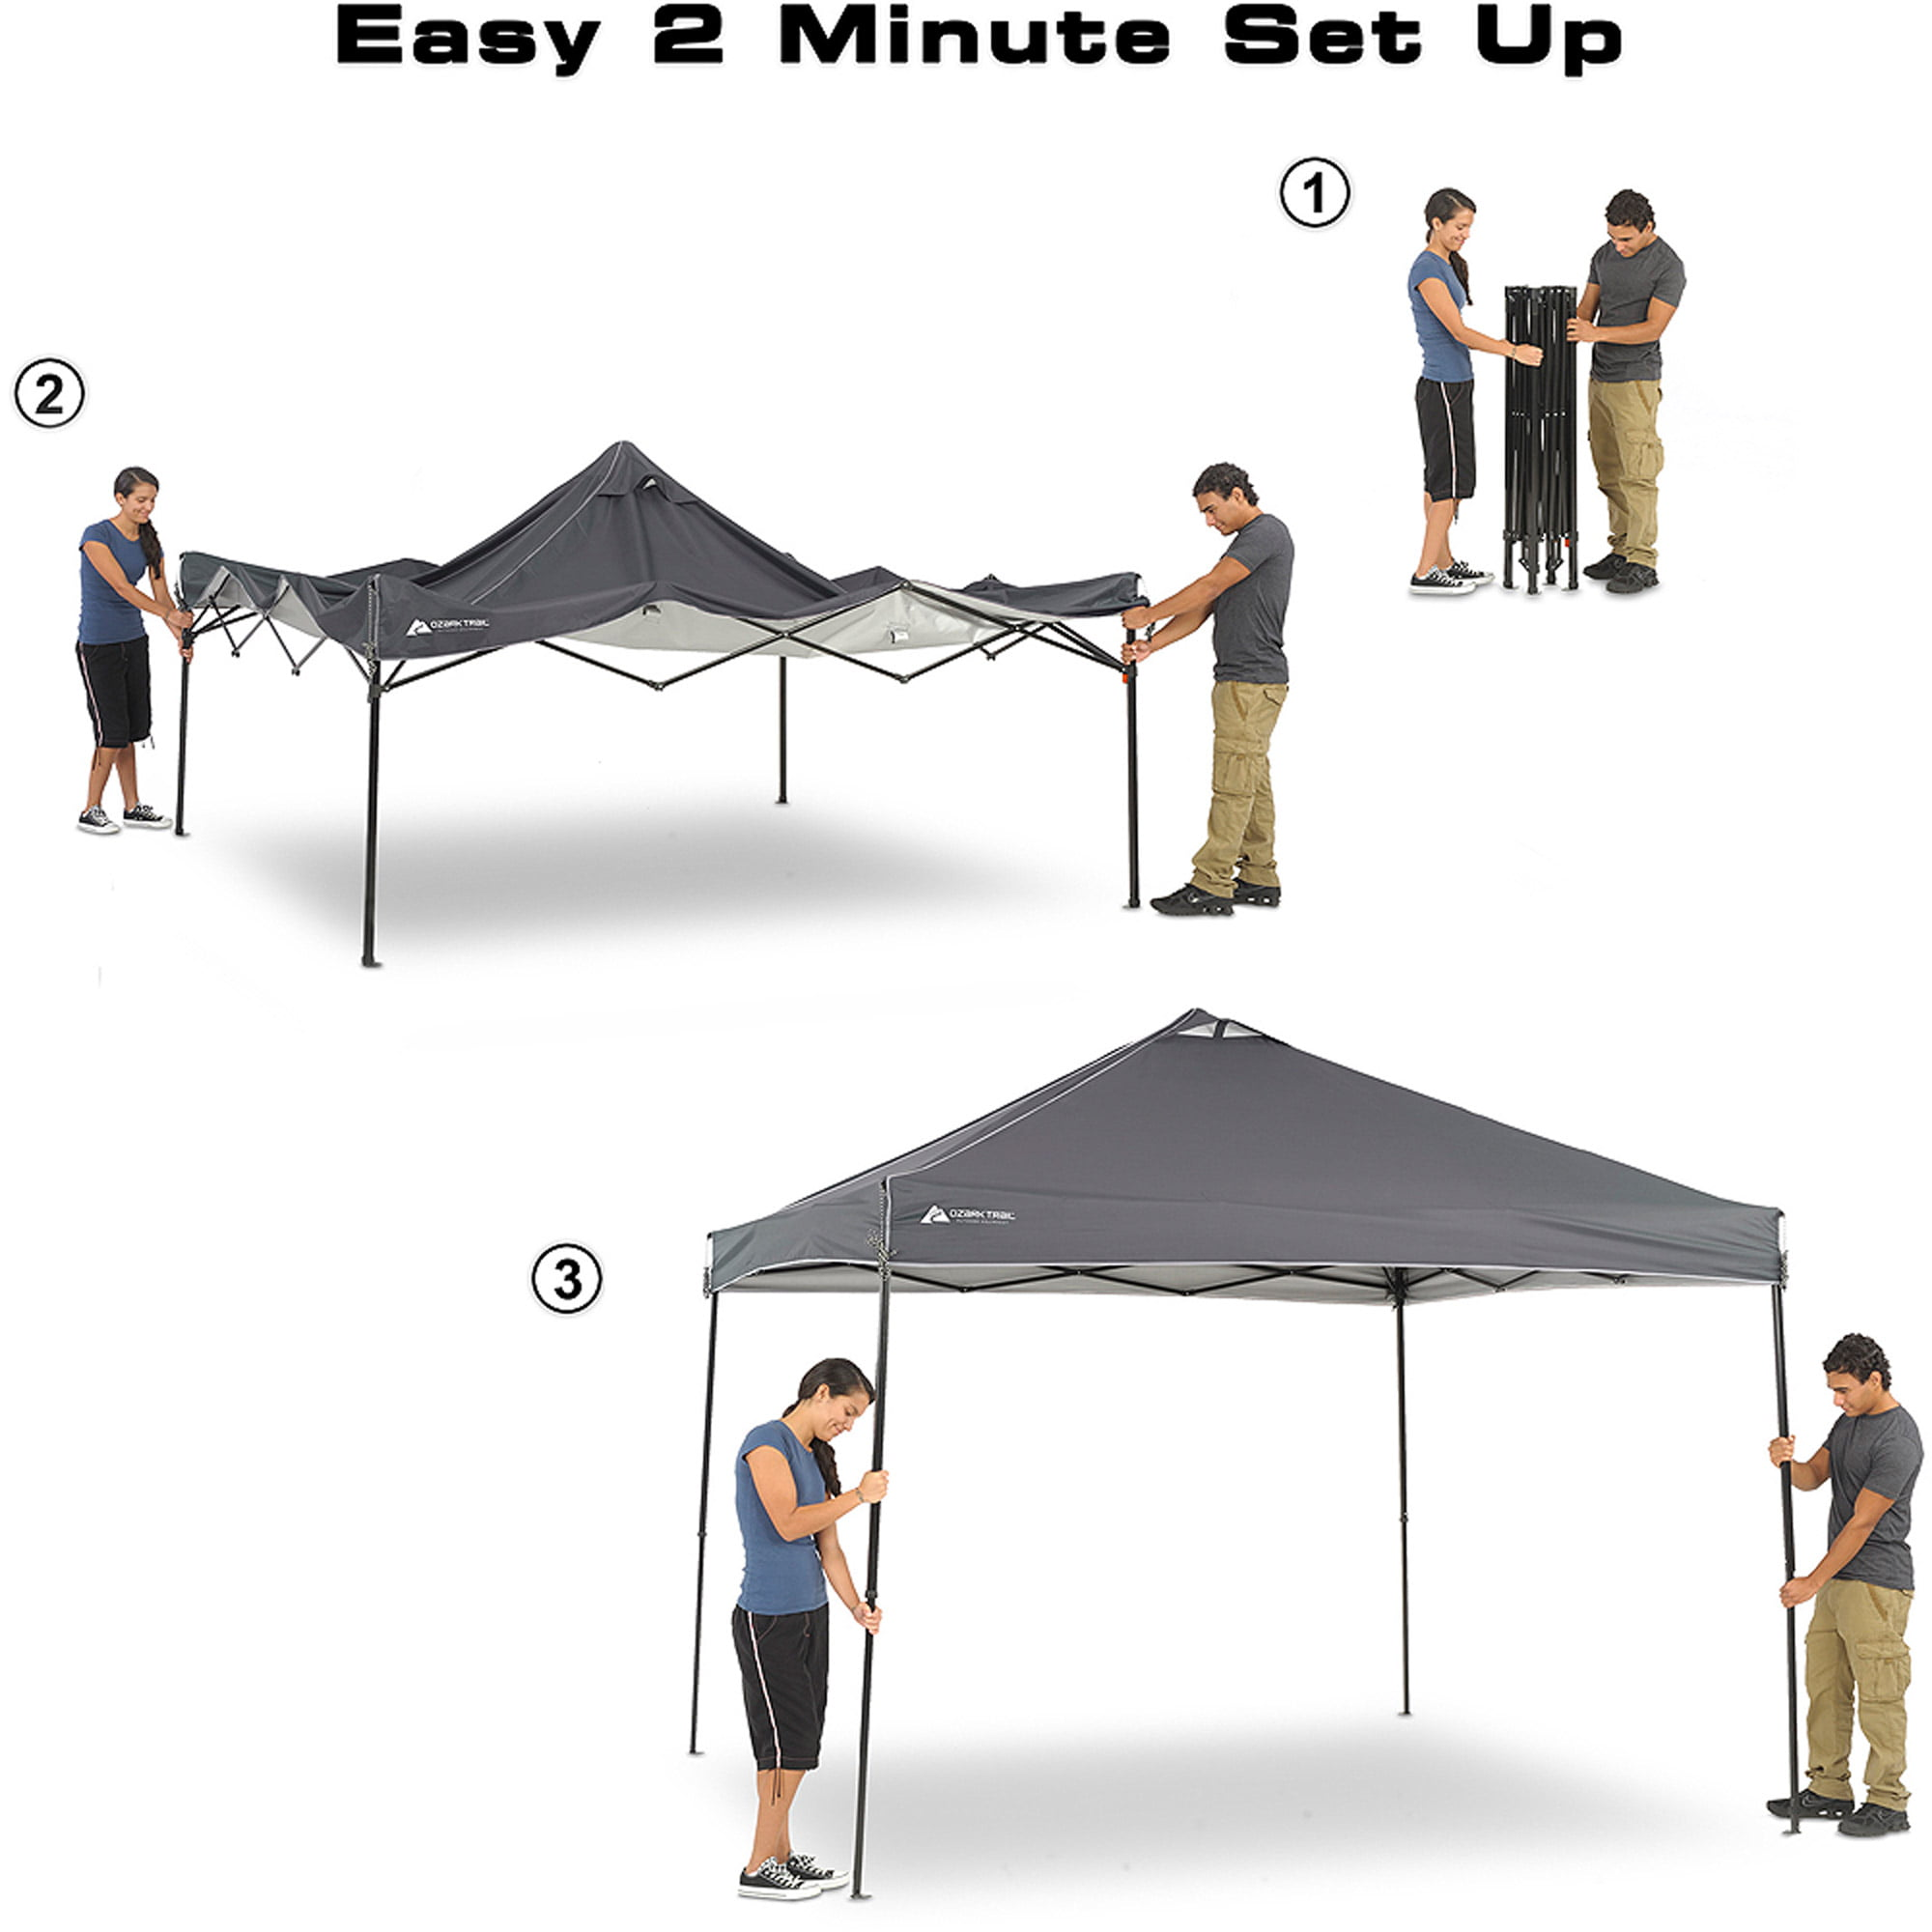 Ozark Trail Instant 10x10 Straight Leg Canopy with 4 Chairs Value Bundle - Walmart.com  sc 1 st  Walmart & Ozark Trail Instant 10x10 Straight Leg Canopy with 4 Chairs Value ...